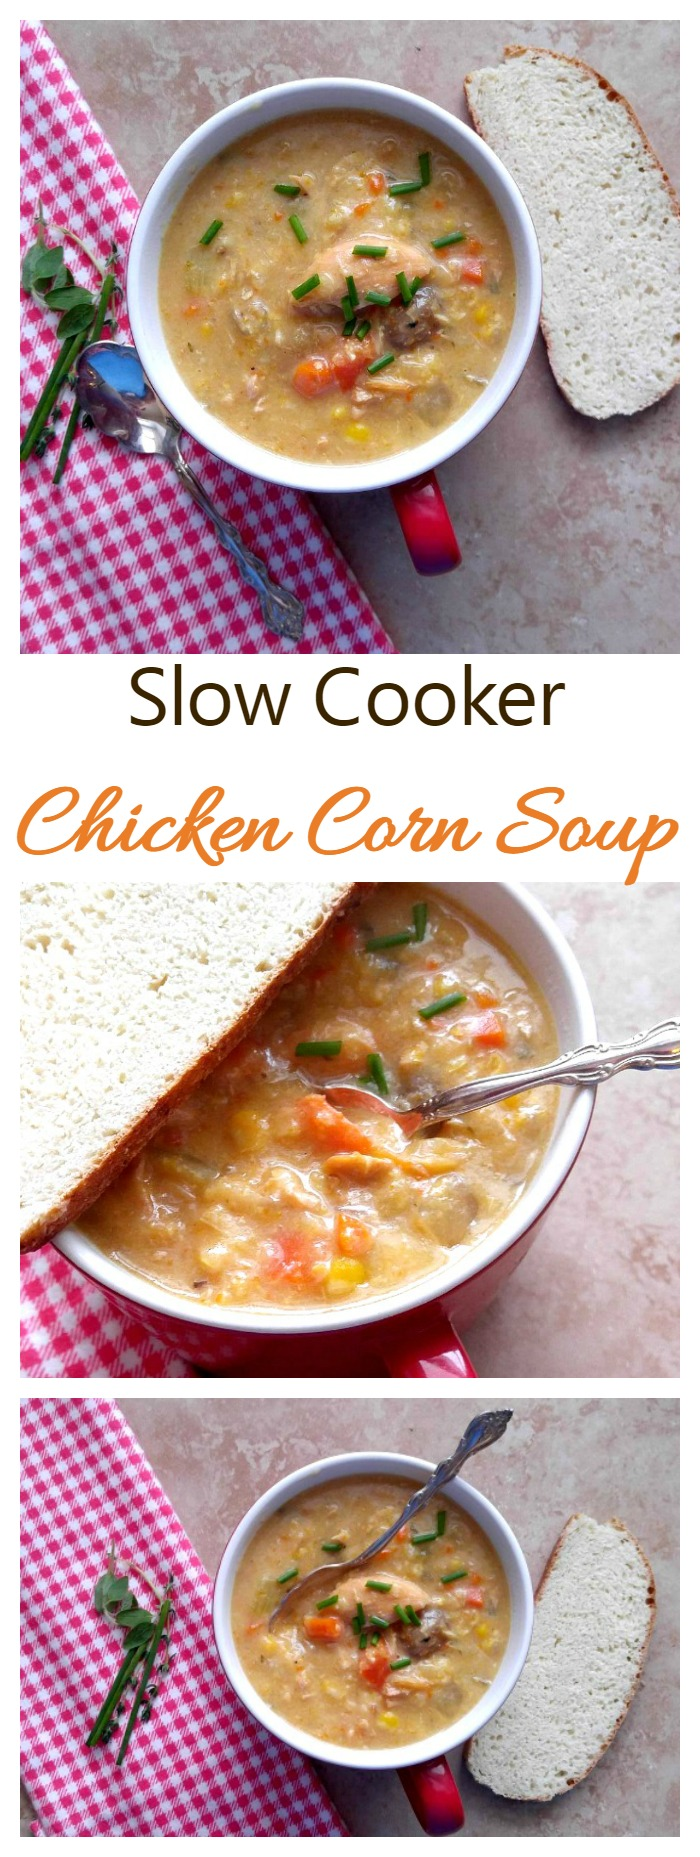 Chicken Corn Soup - A Crock Pot Delight